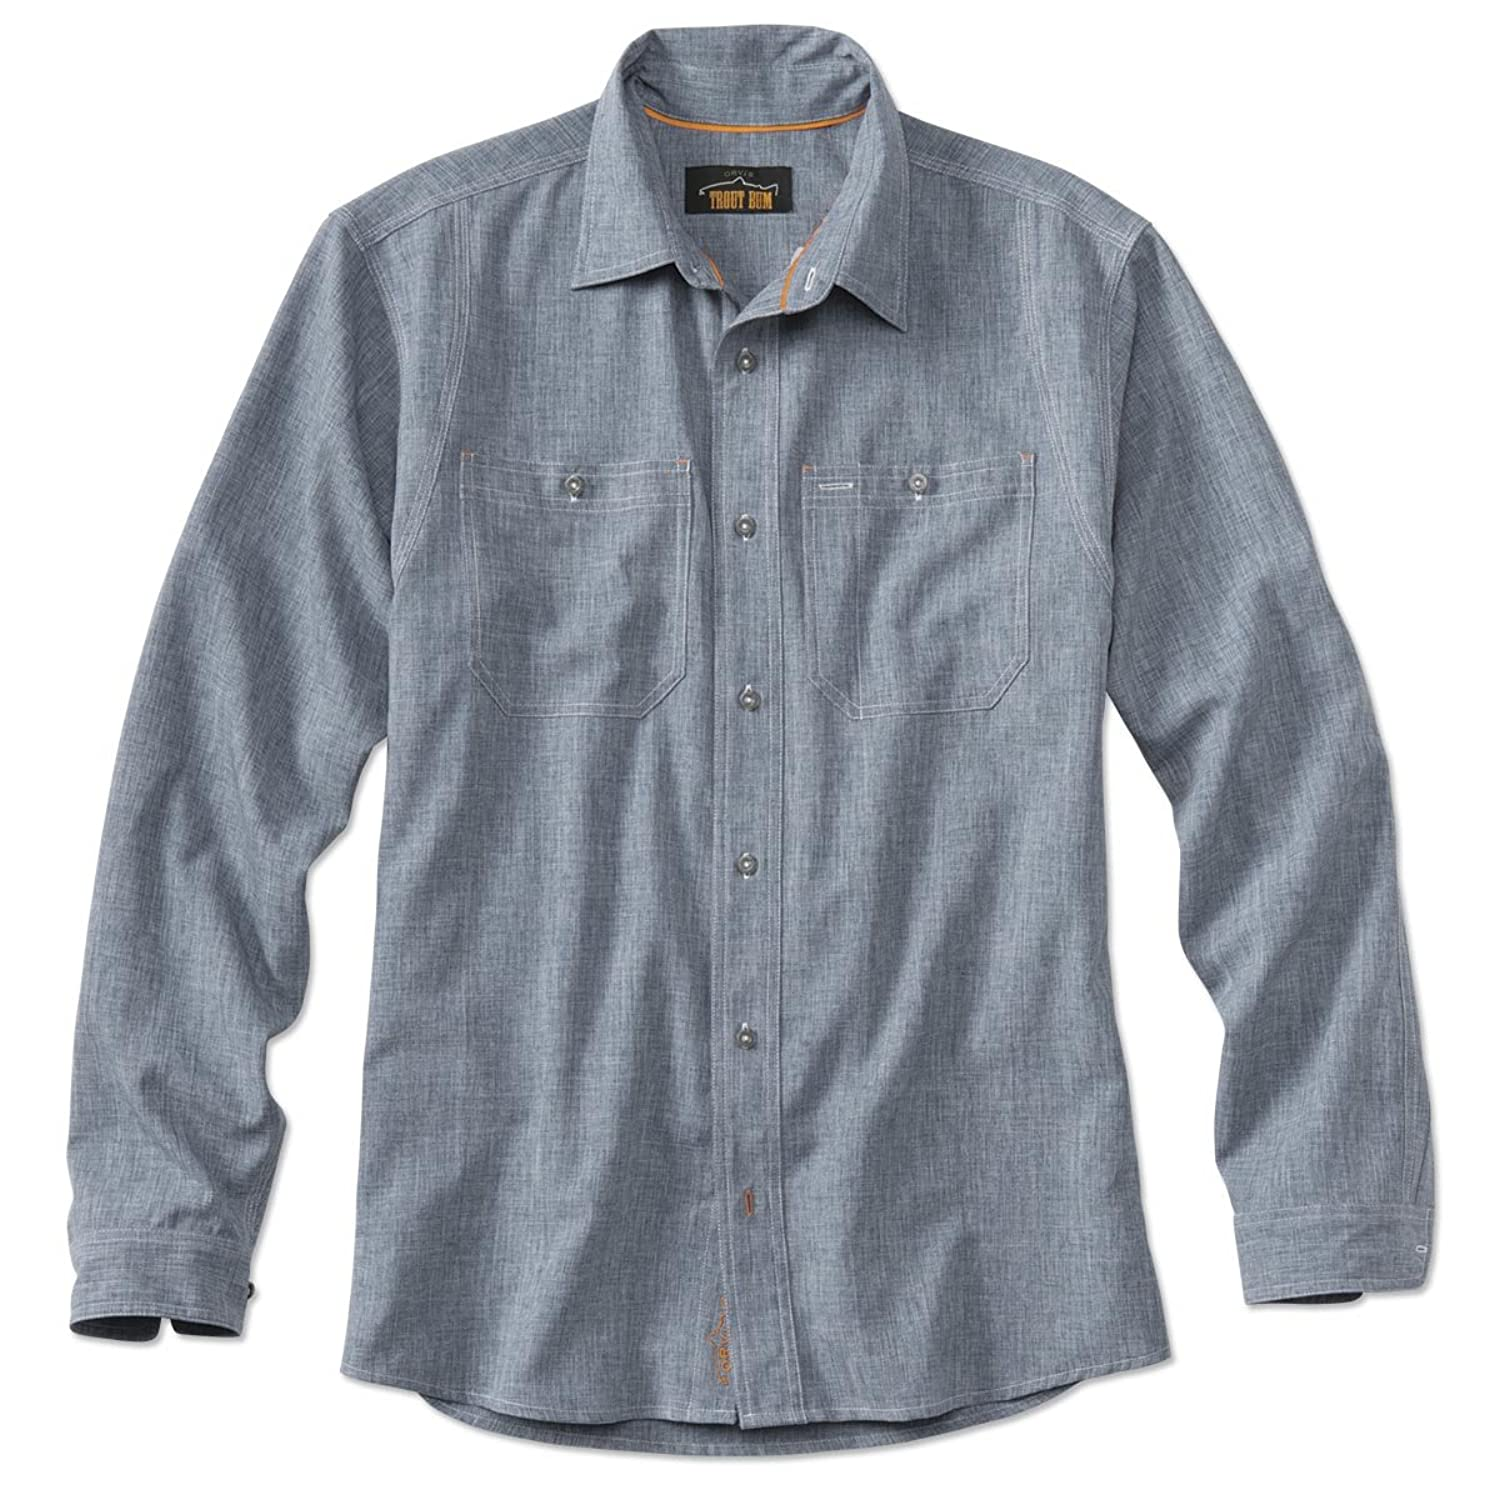 1910s Men's Working Class Clothing Orvis Tech Chambray Work Shirt $89.00 AT vintagedancer.com